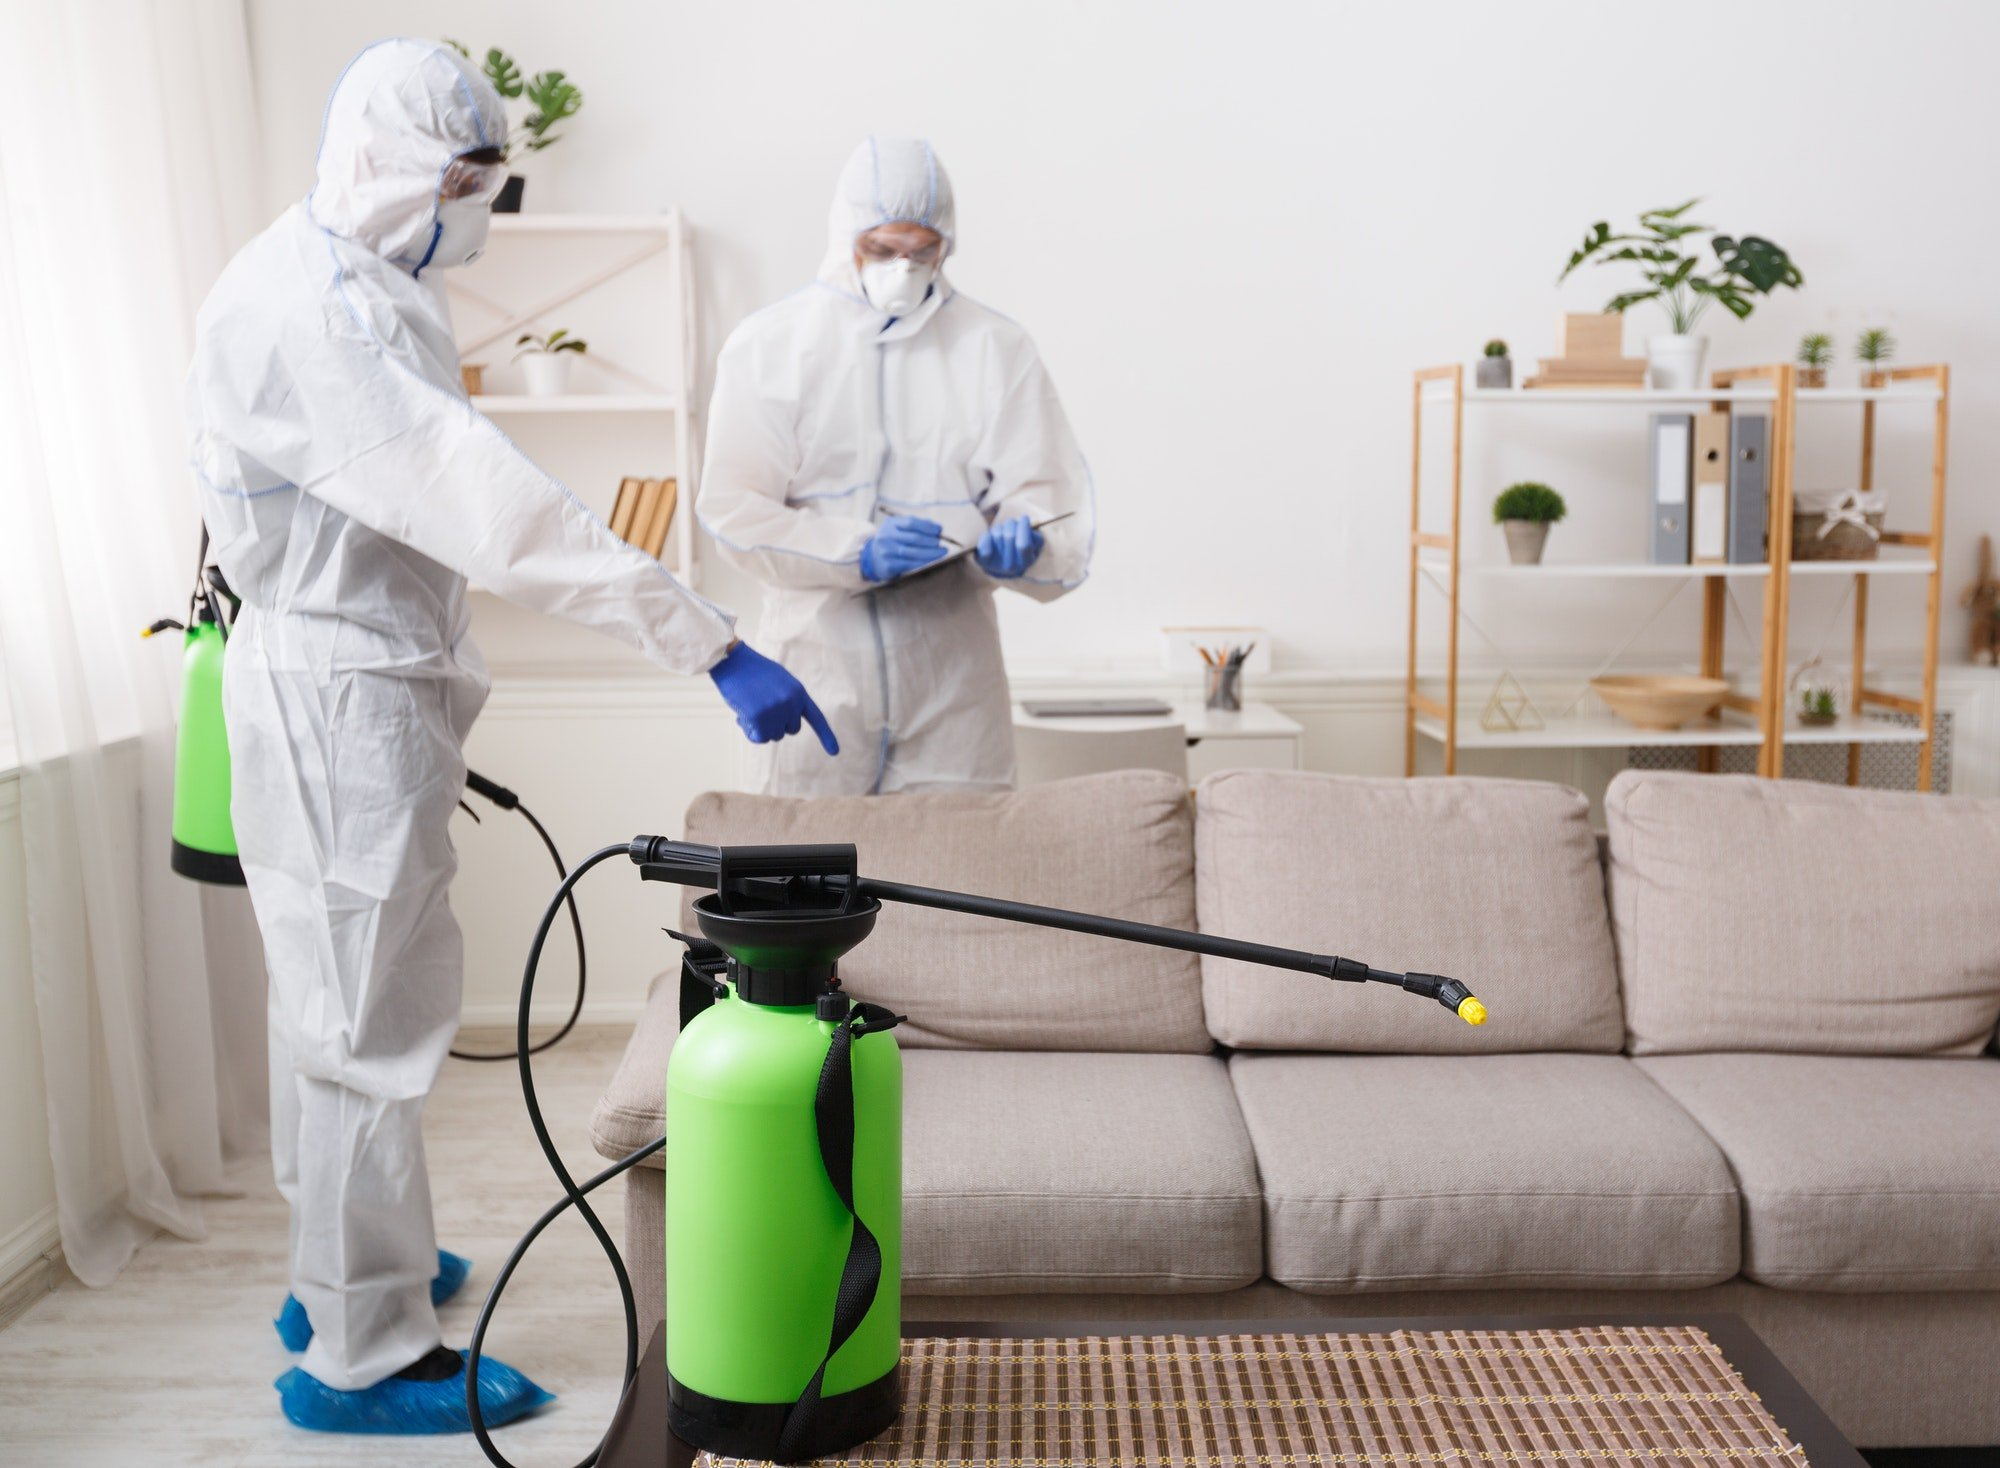 Cleaning company making treatment of sofas and surfaces